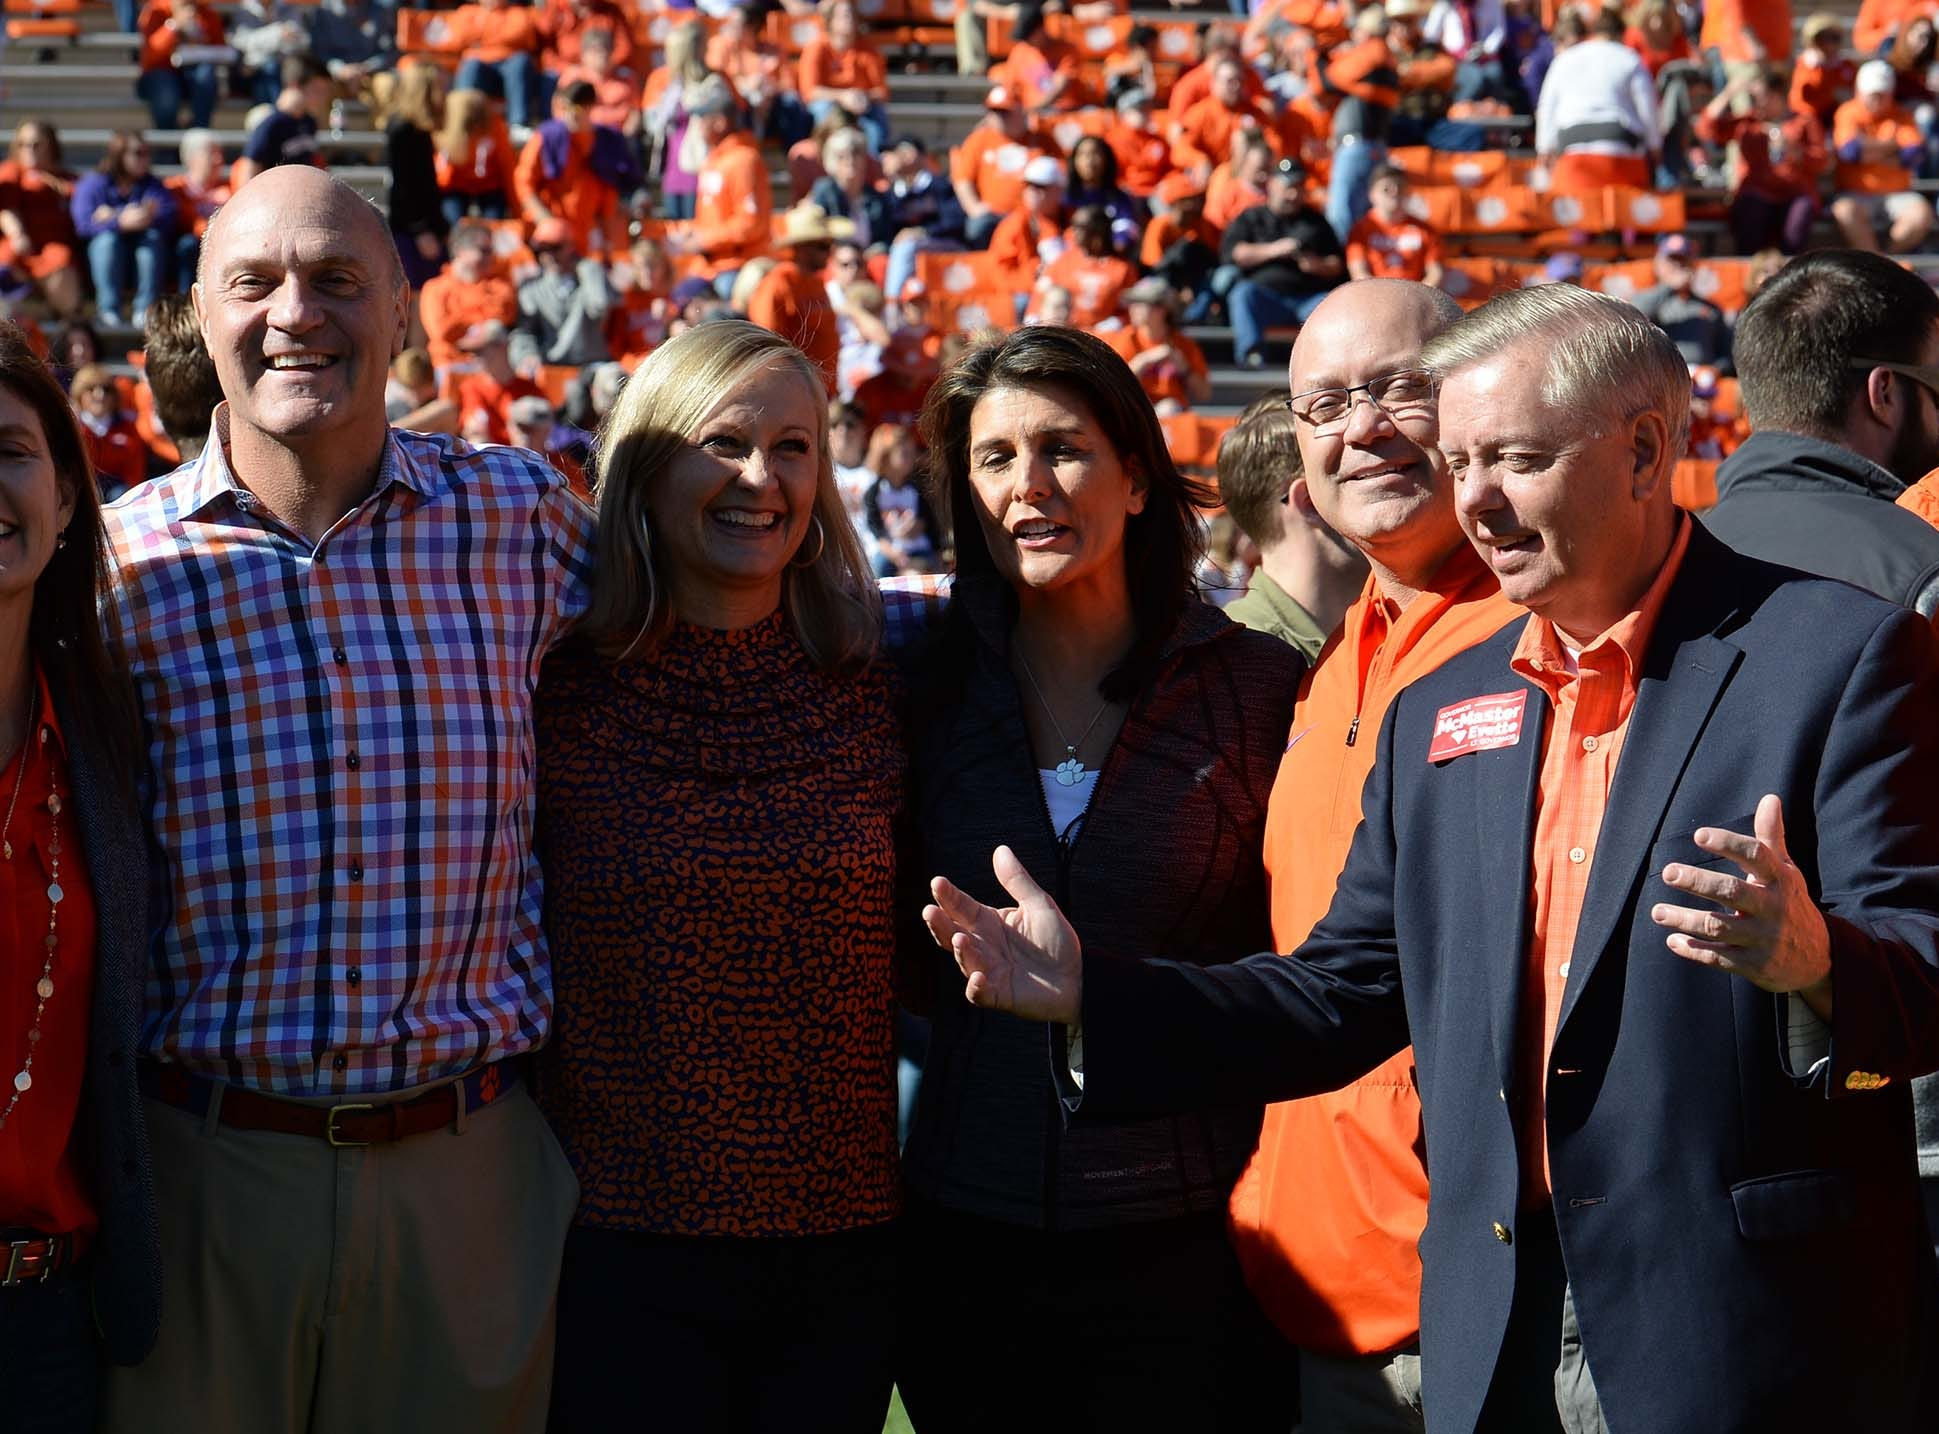 Clemson President Jim Clements, left, Beth Clements, former State Gov. Nikie Haley, look at U.S. Sen. Lindsey Graham, right, before the game in Memorial Stadium on Saturday, November 3, 2018.